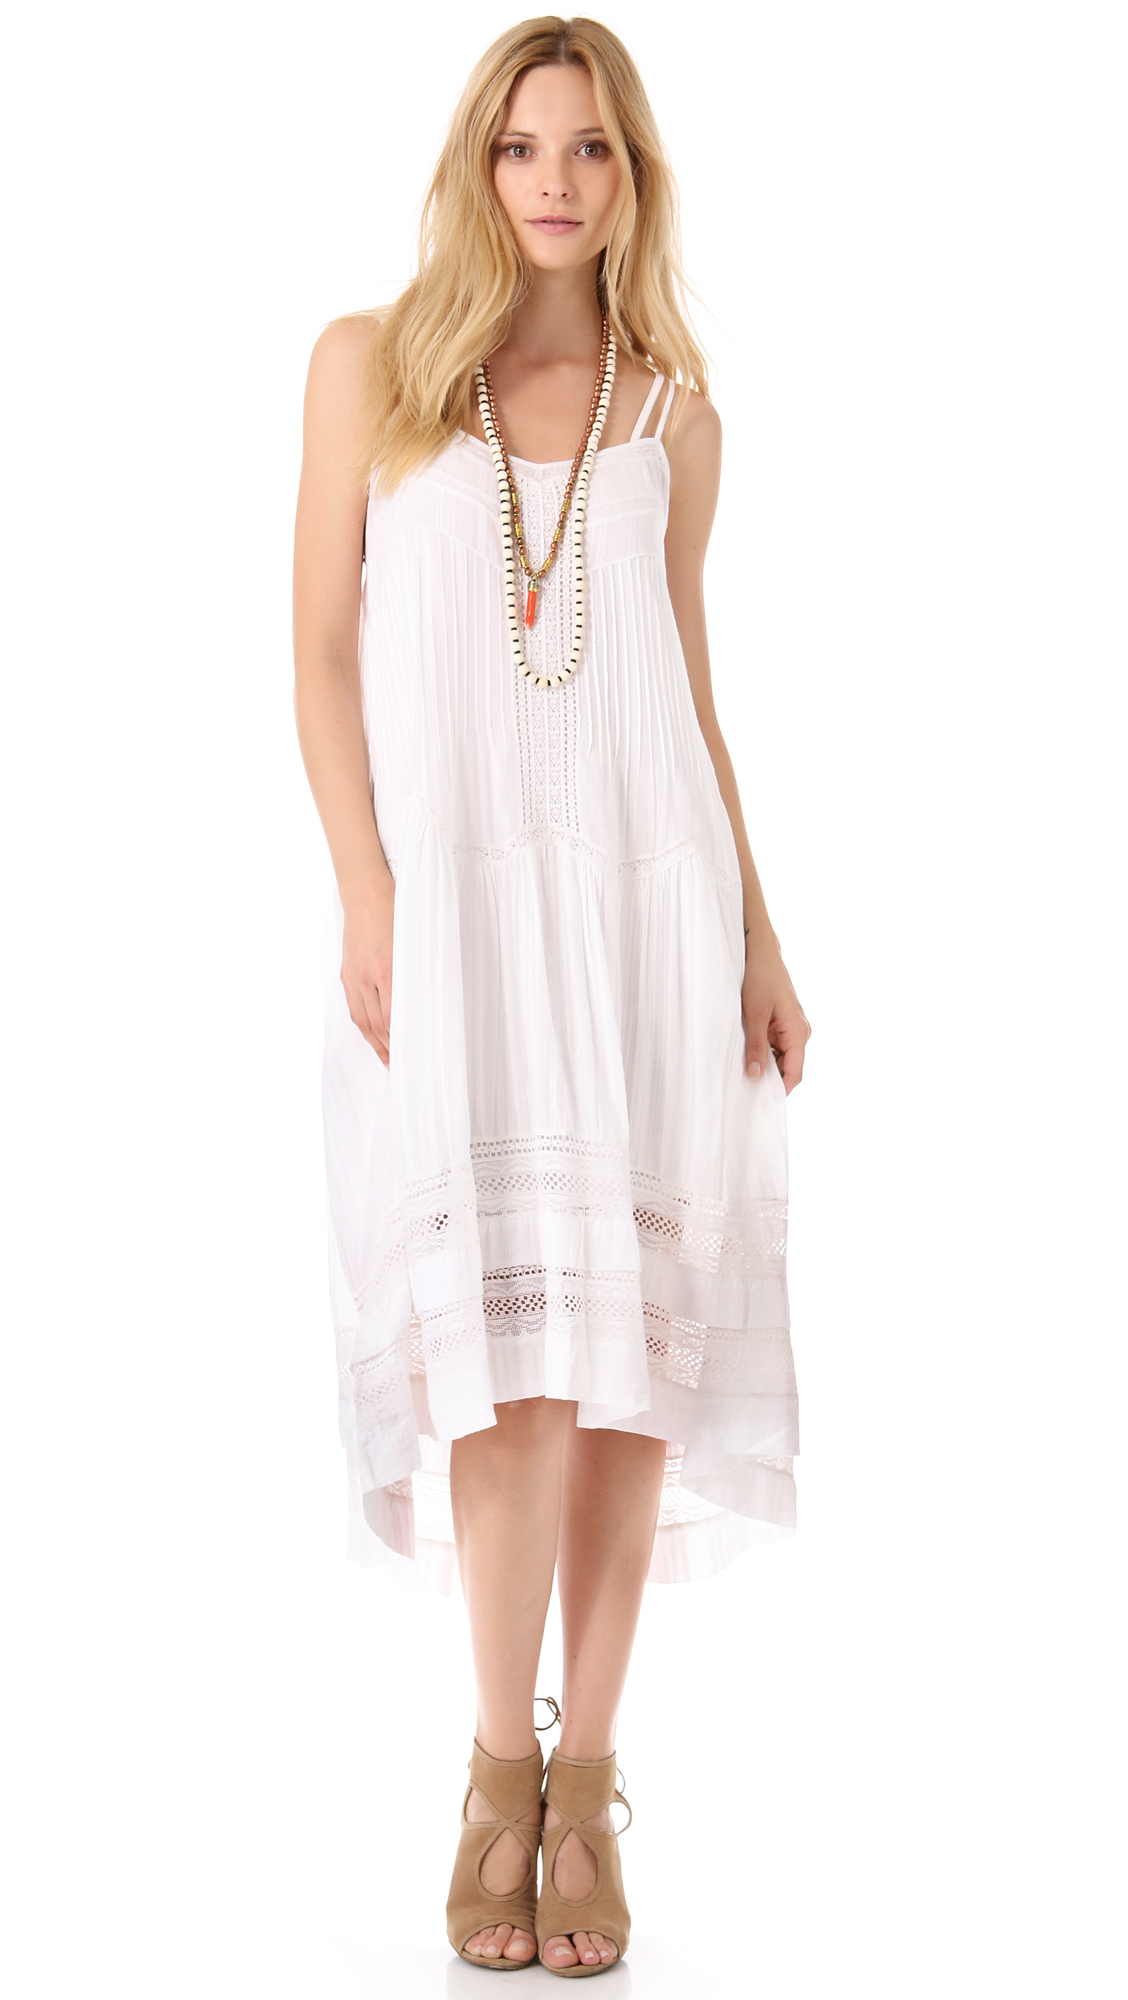 Twelfth Street Cynthia Vincent Western Lace Dress In White